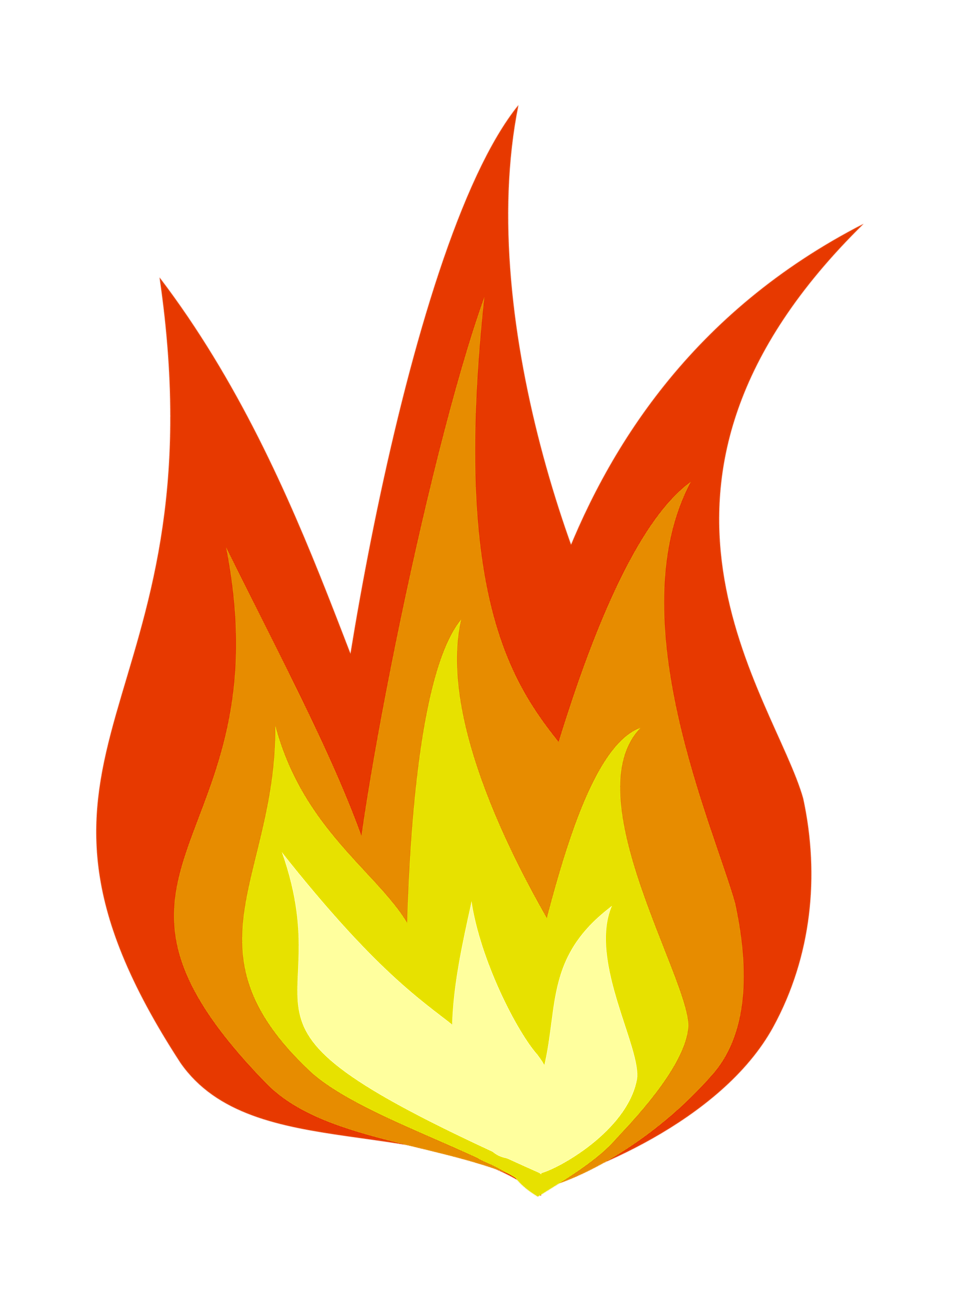 Flames clipart simple fire. Flame transparent png stickpng